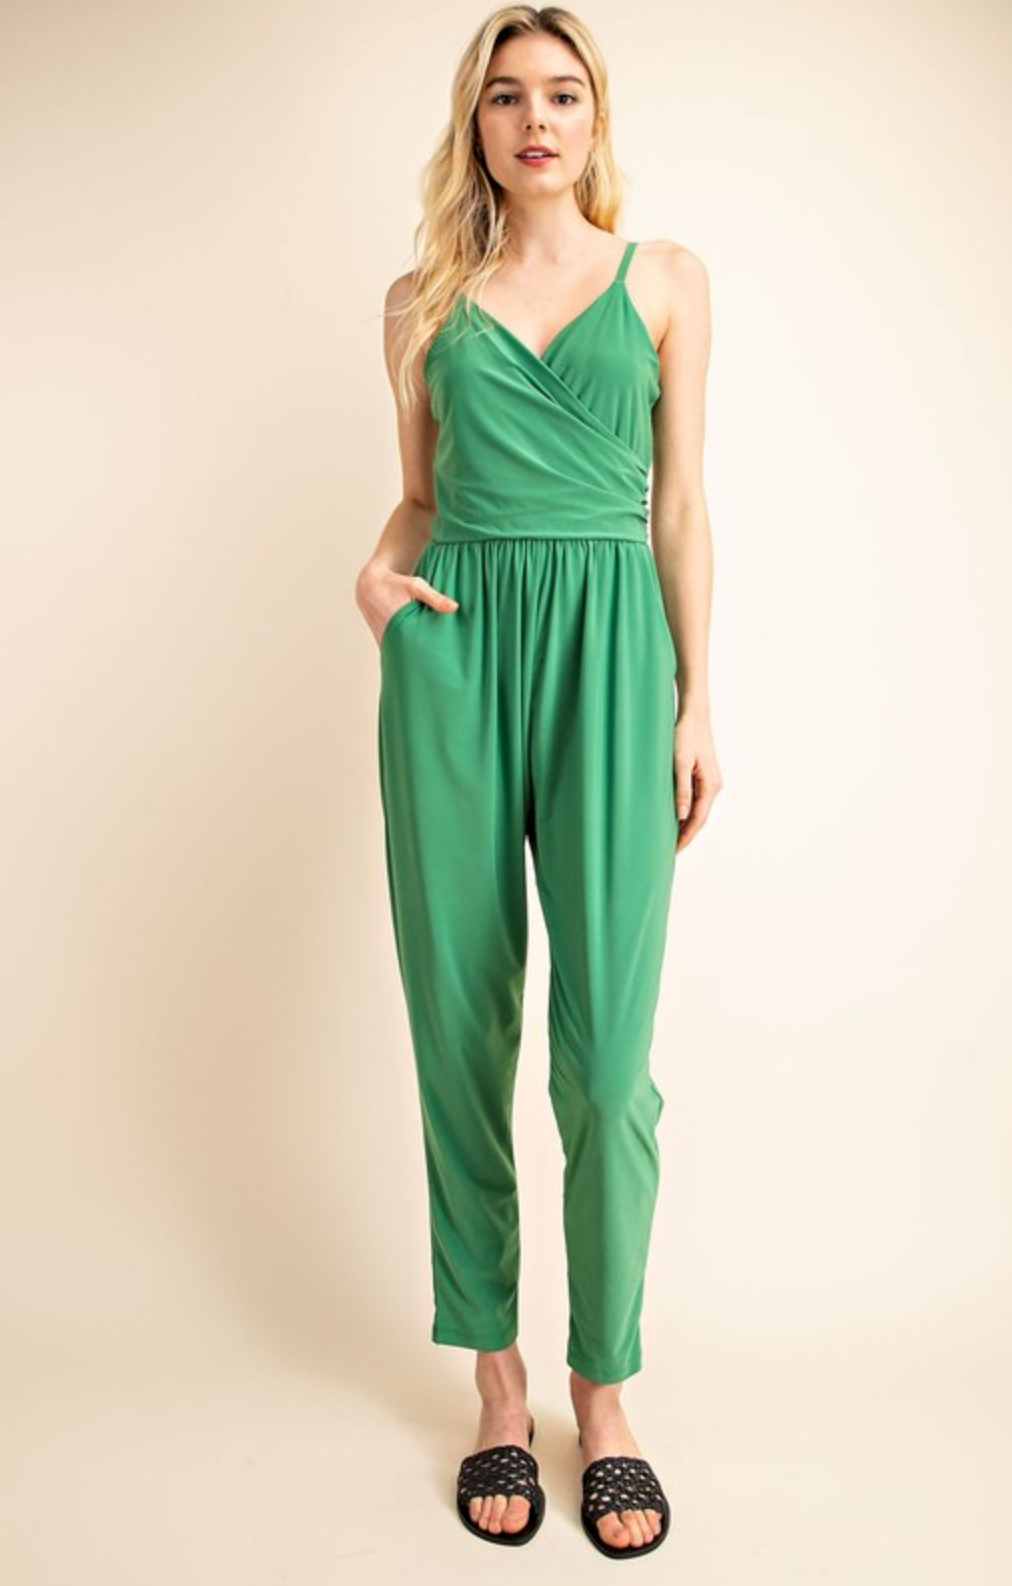 Green With Envy Jumpsuit